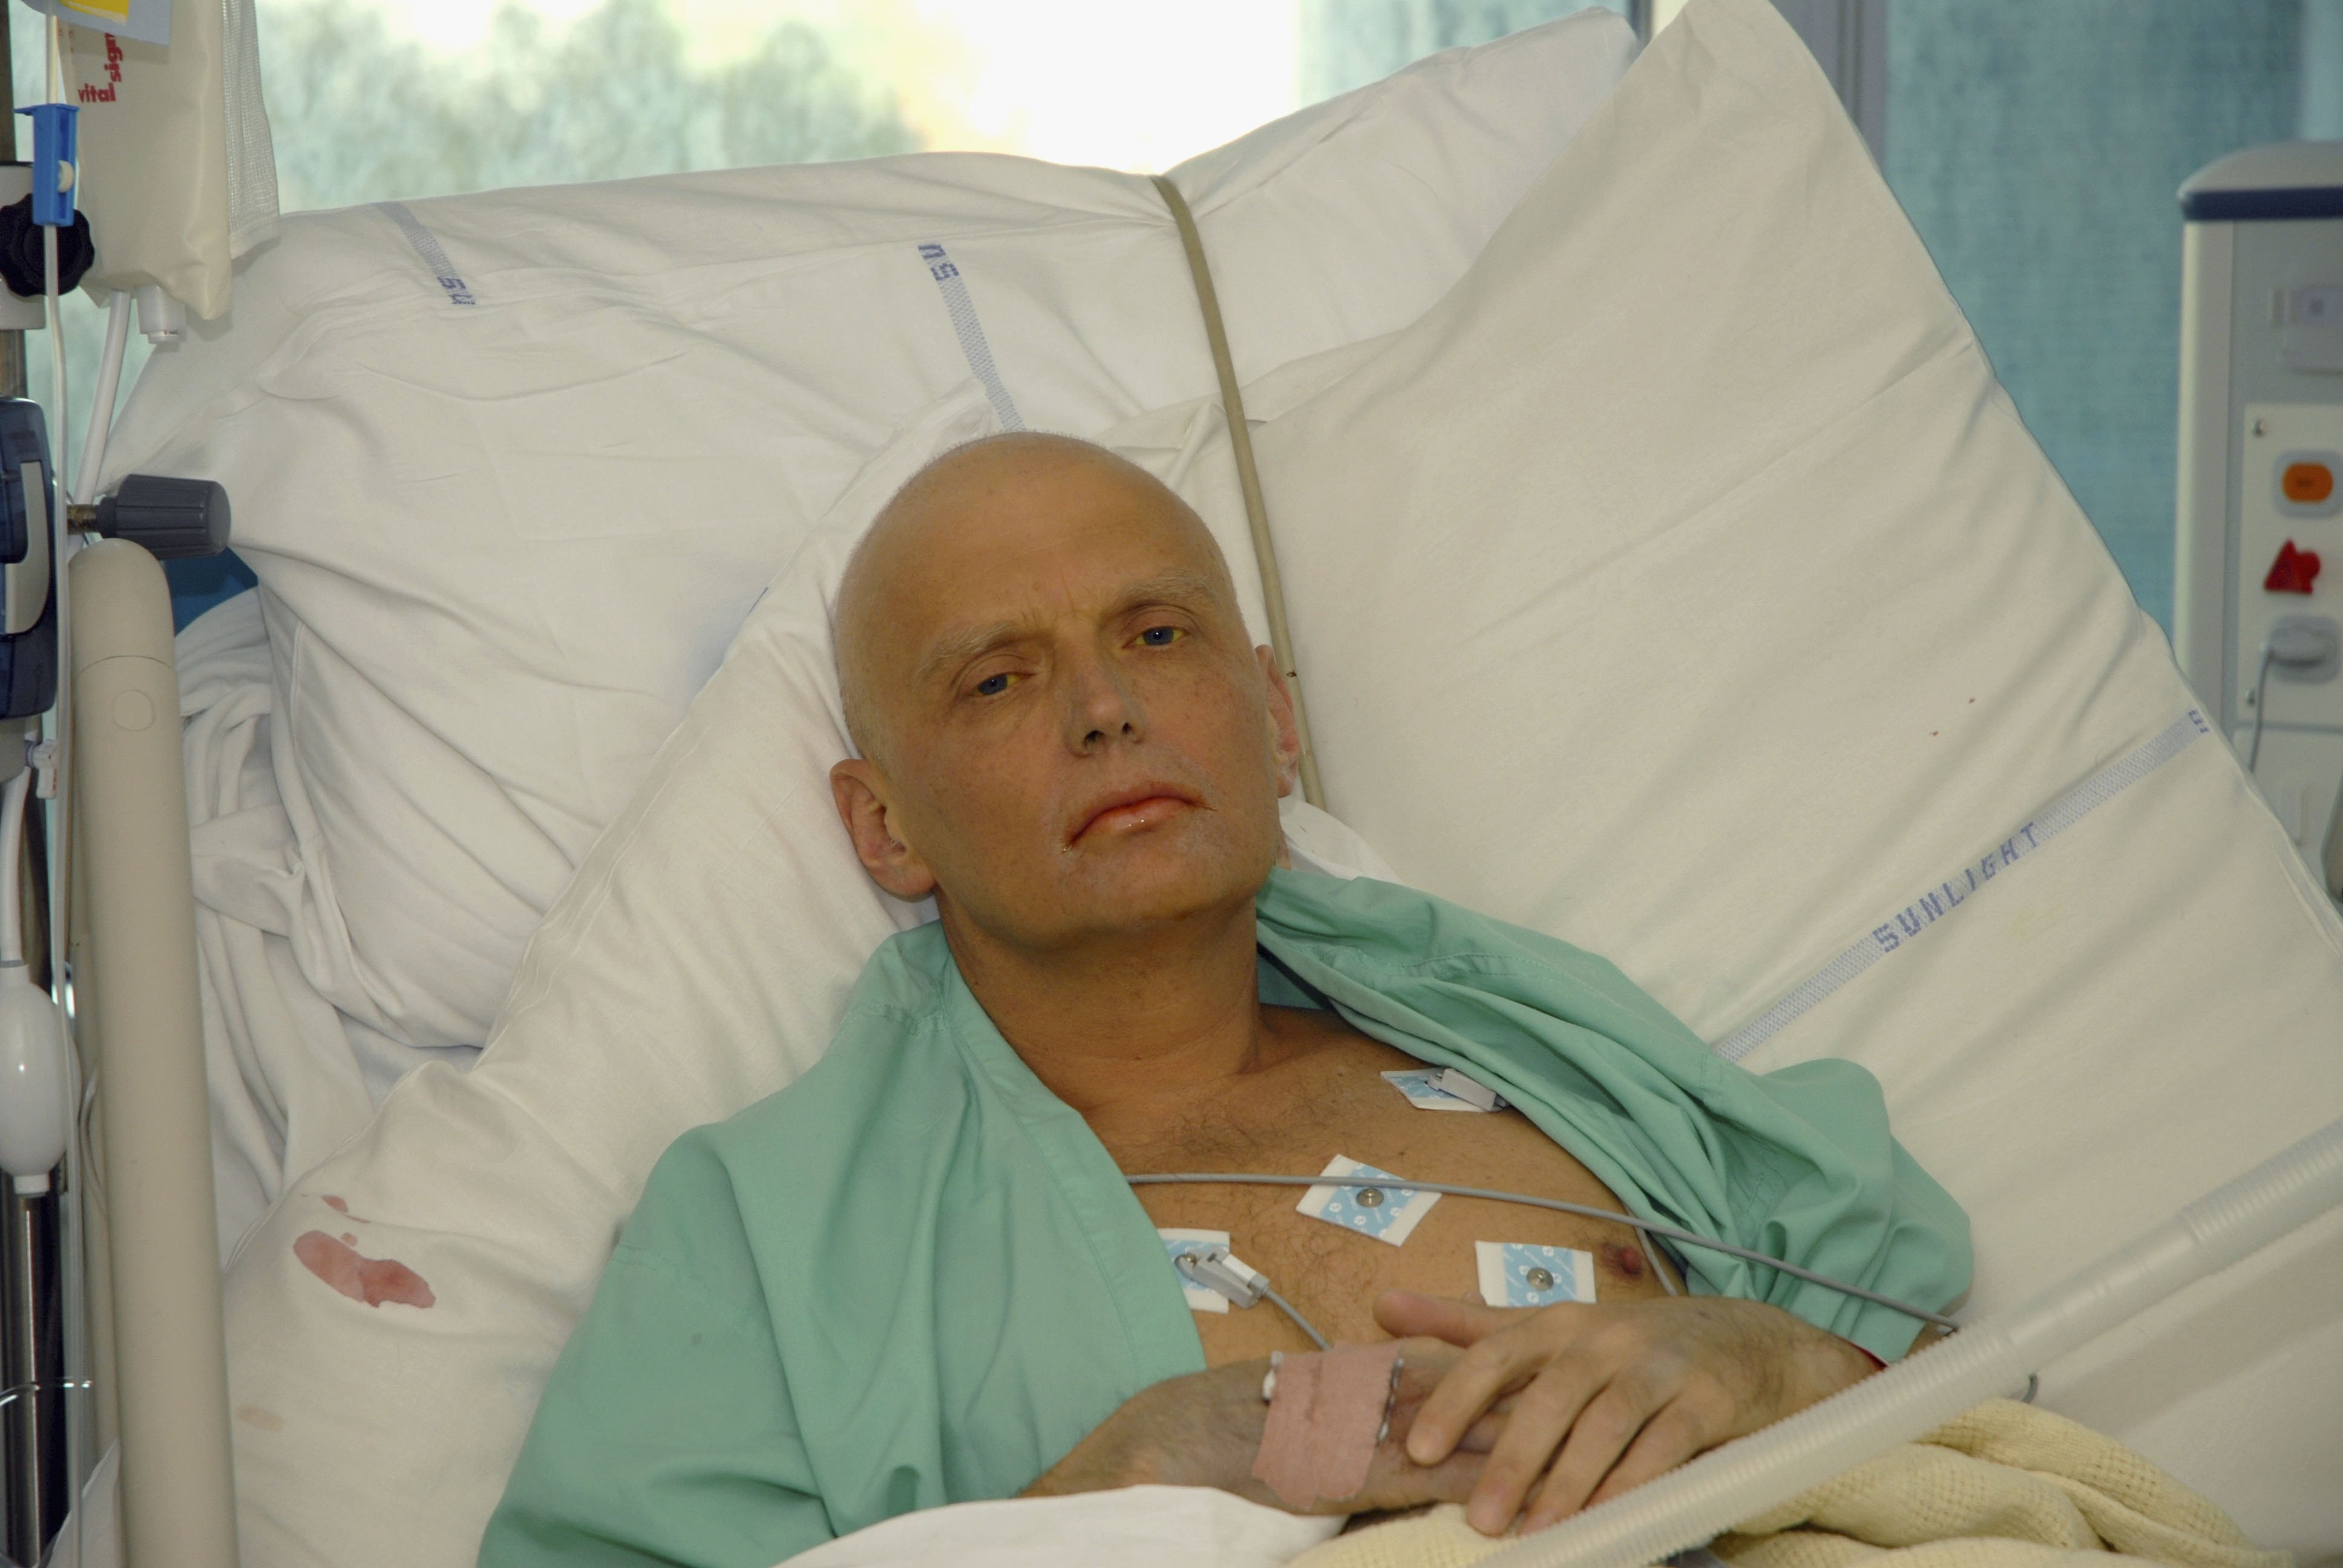 Litvinenko had himself accused Putin of ordering his killing, according to testimony from a friend.